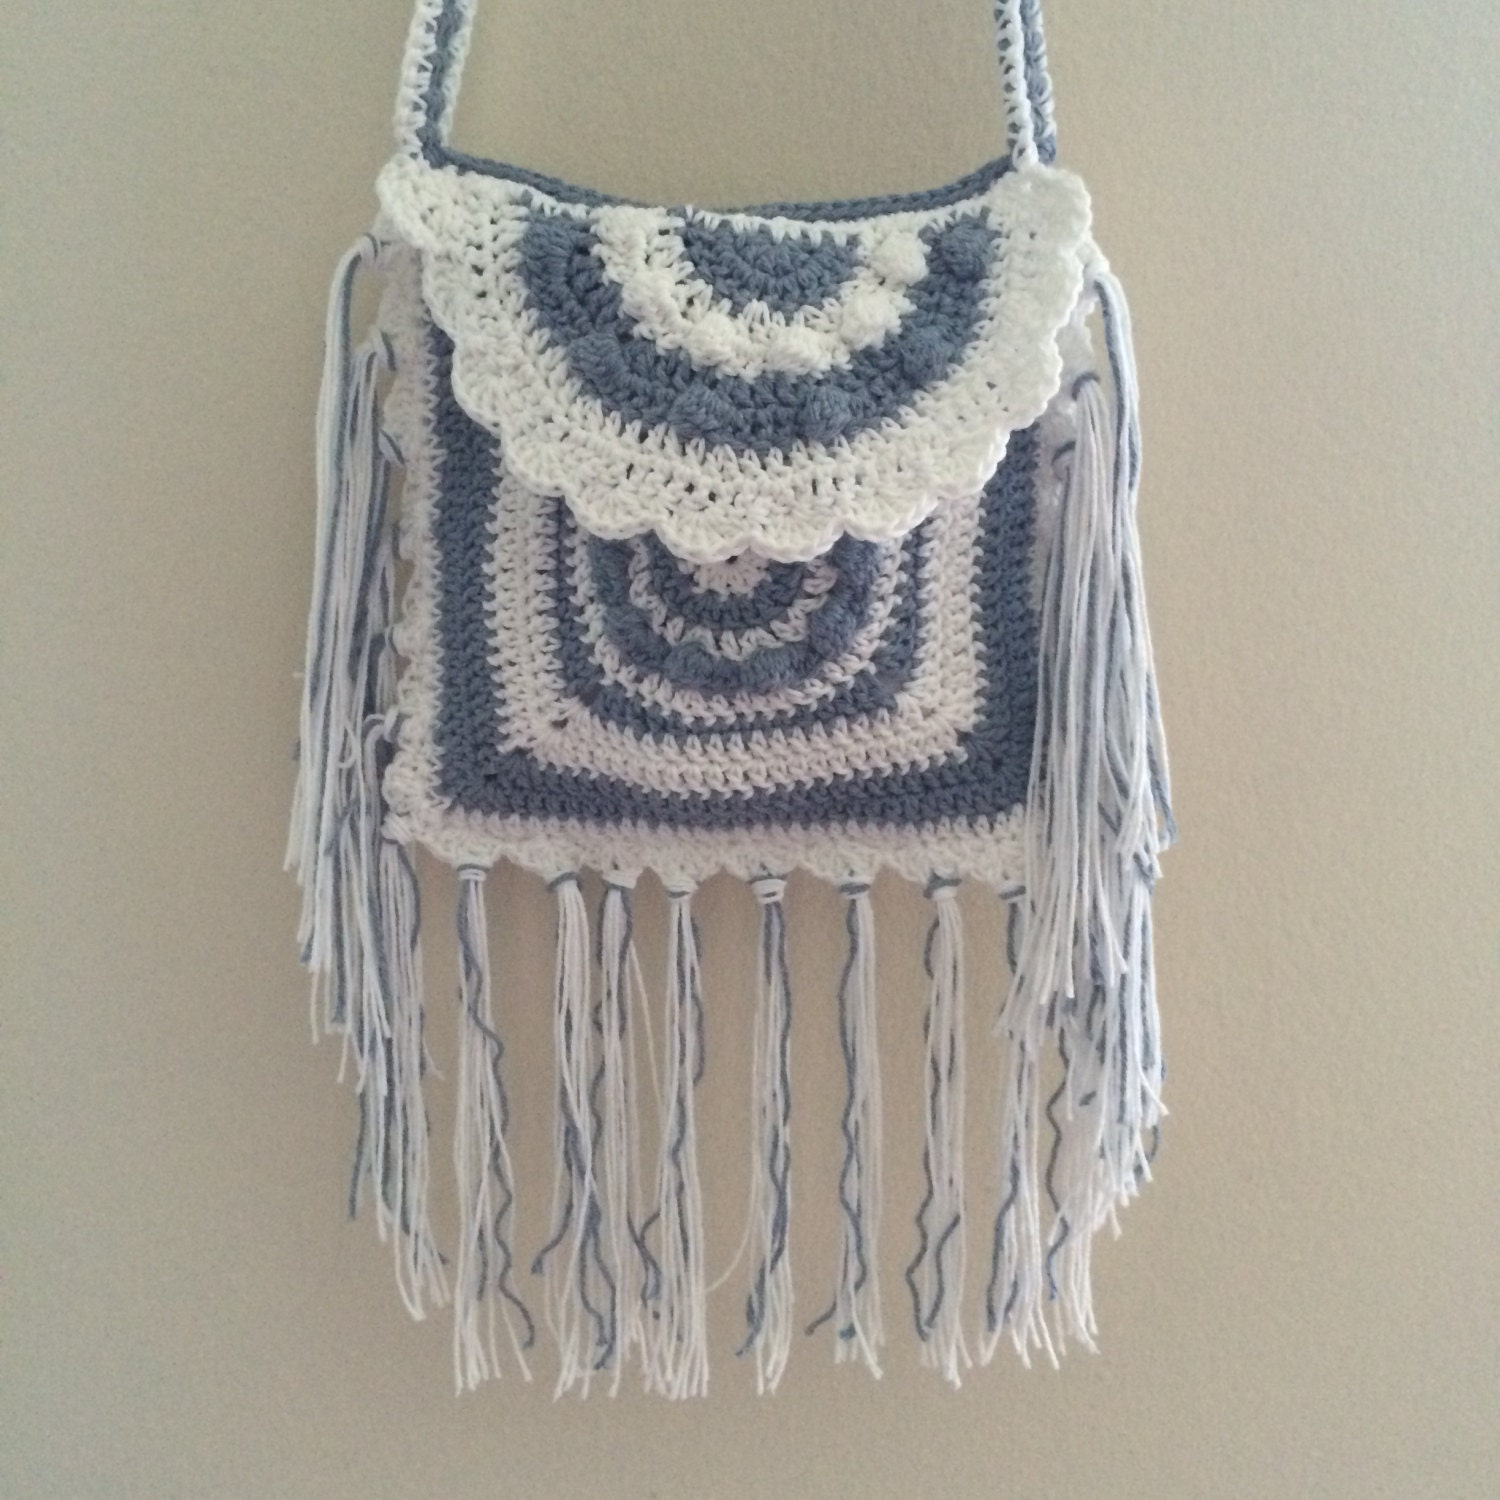 Crochet crossbody bag Fringe purse Boho bag Hippie tote by TemiM